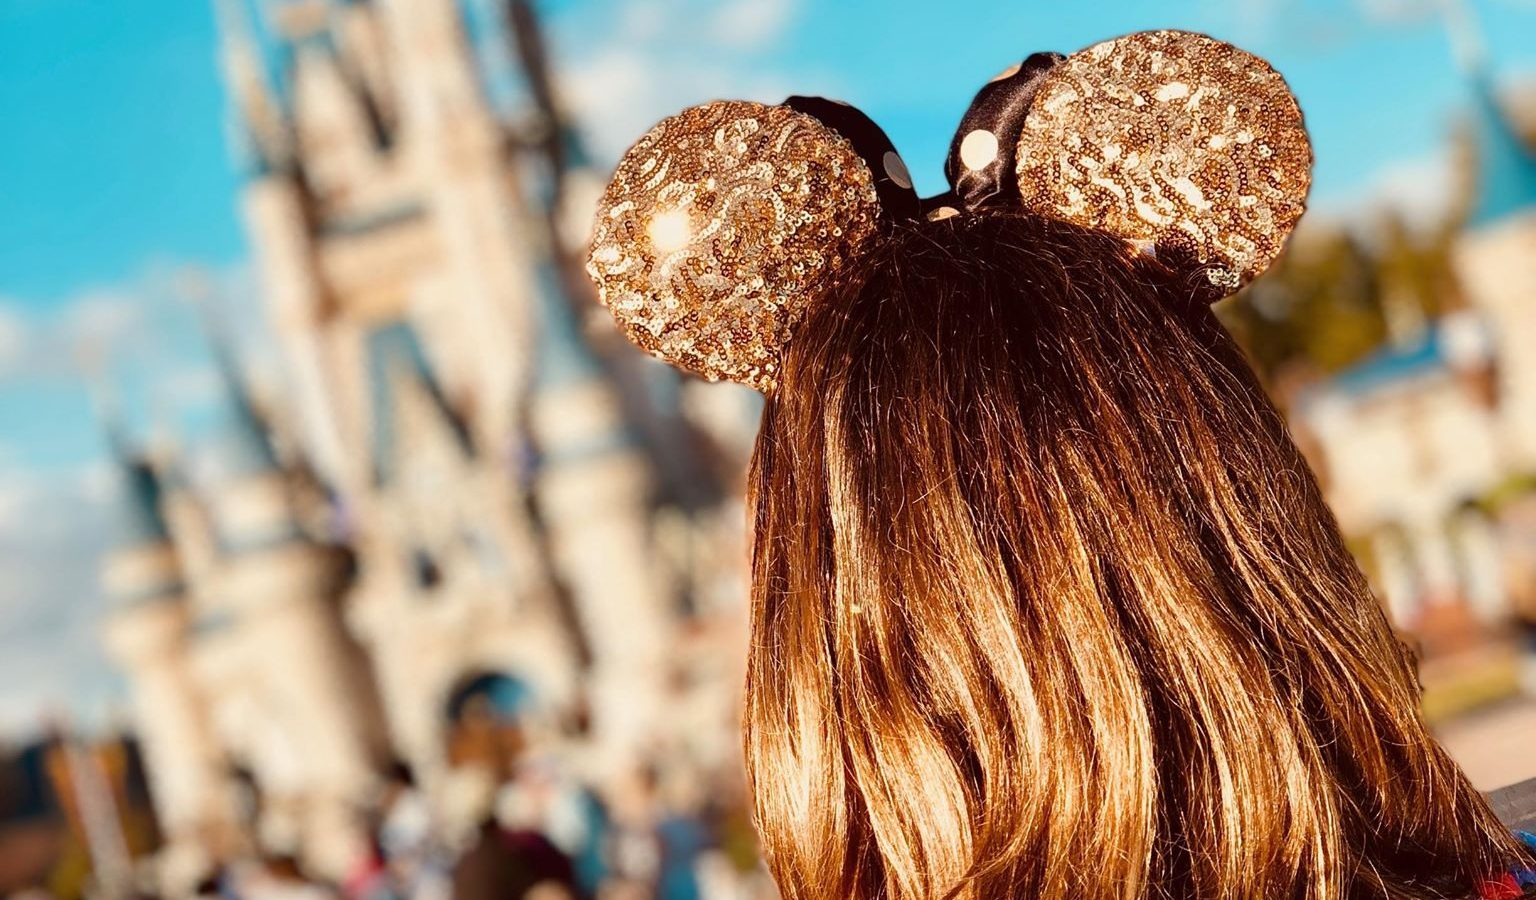 Disney ears and the castle are a must take photo!